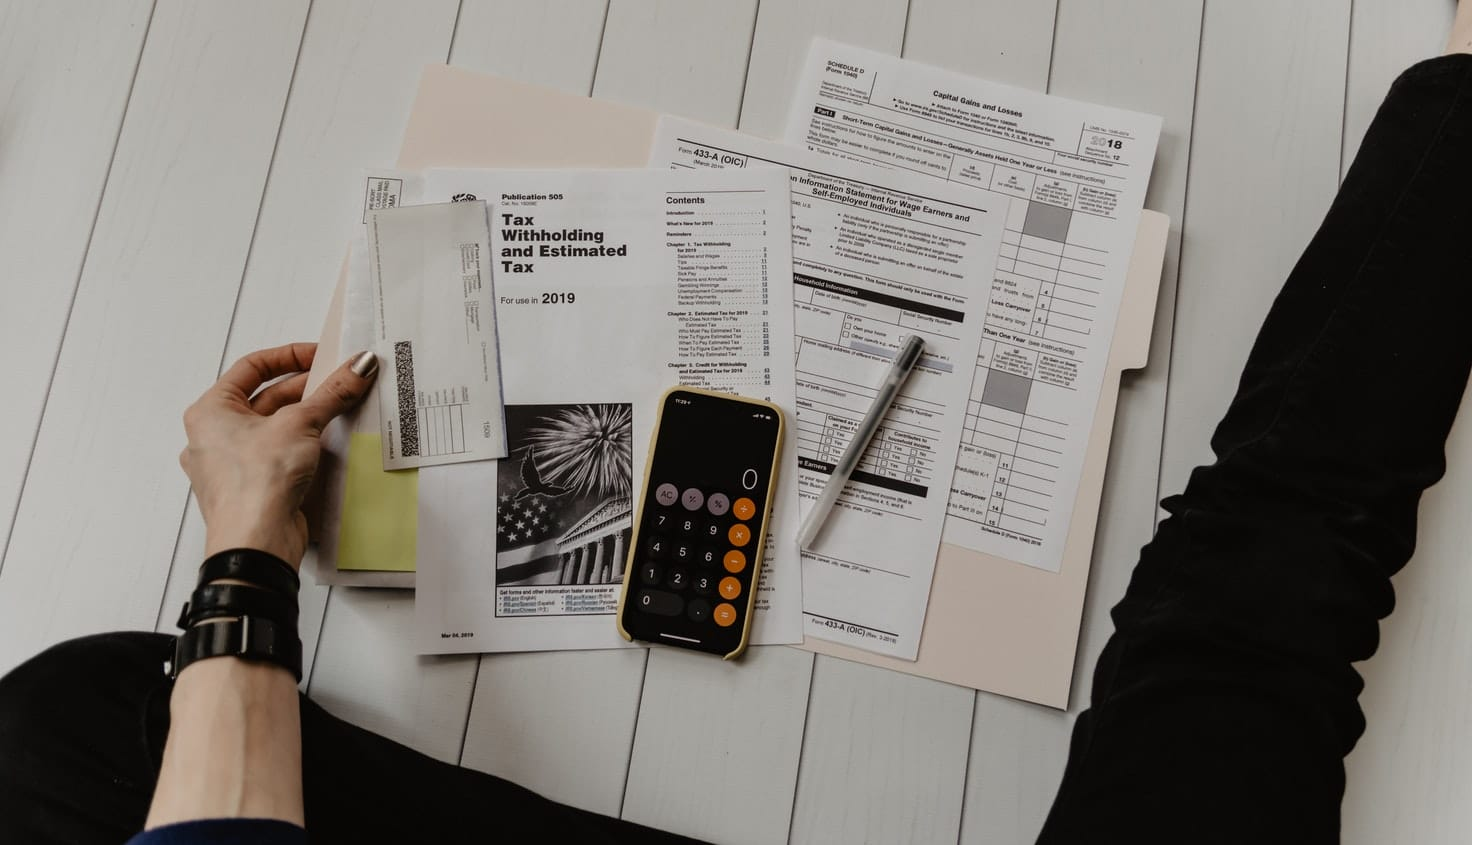 How To Save Tax in UK | Tax saving tips, pay less save more